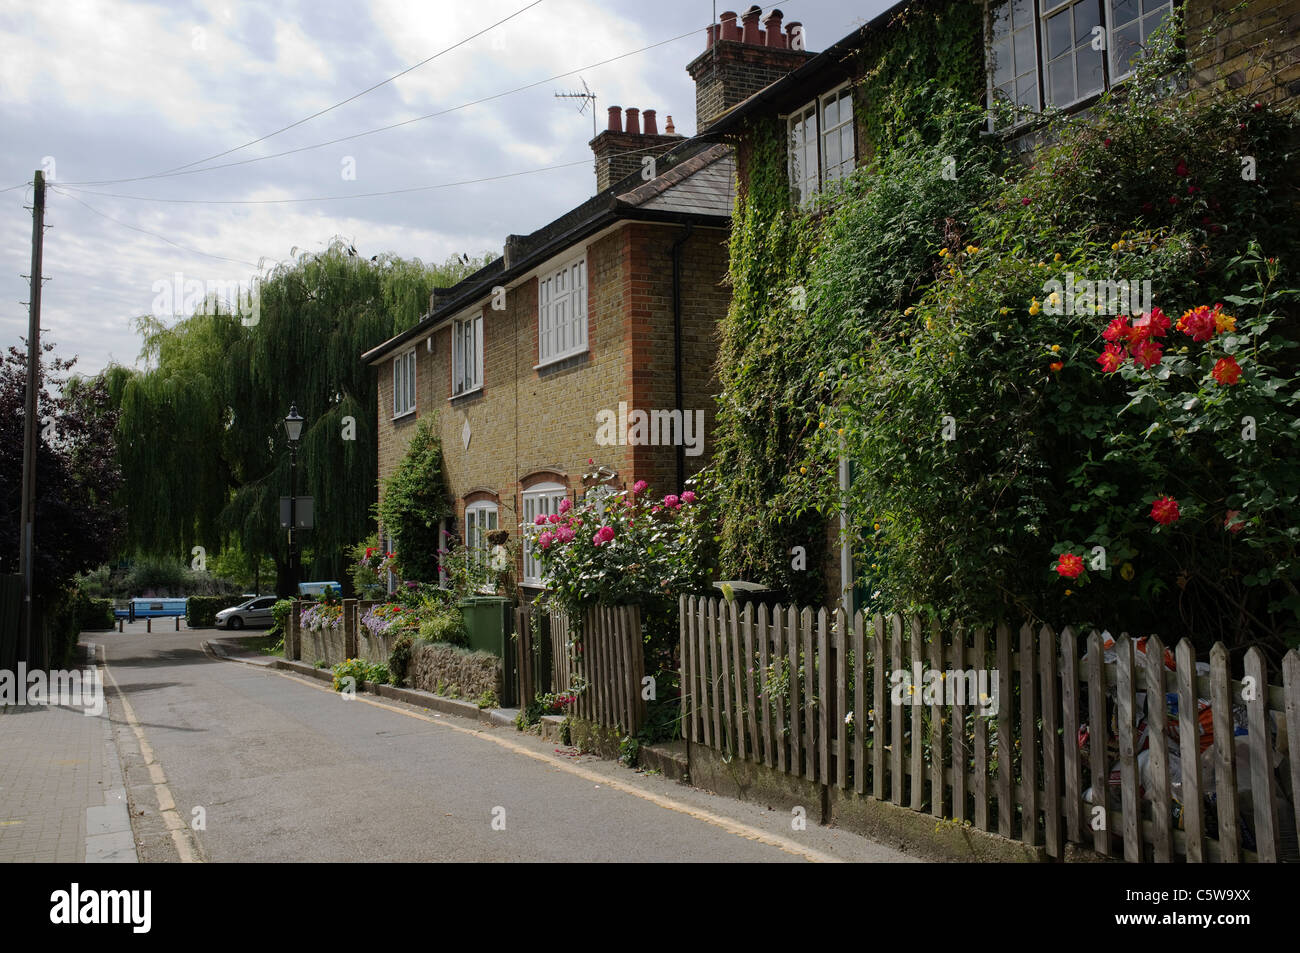 Cottages in Bell Lane, Twickenham, London Borough of Richmond upon Thames -2 - Stock Image